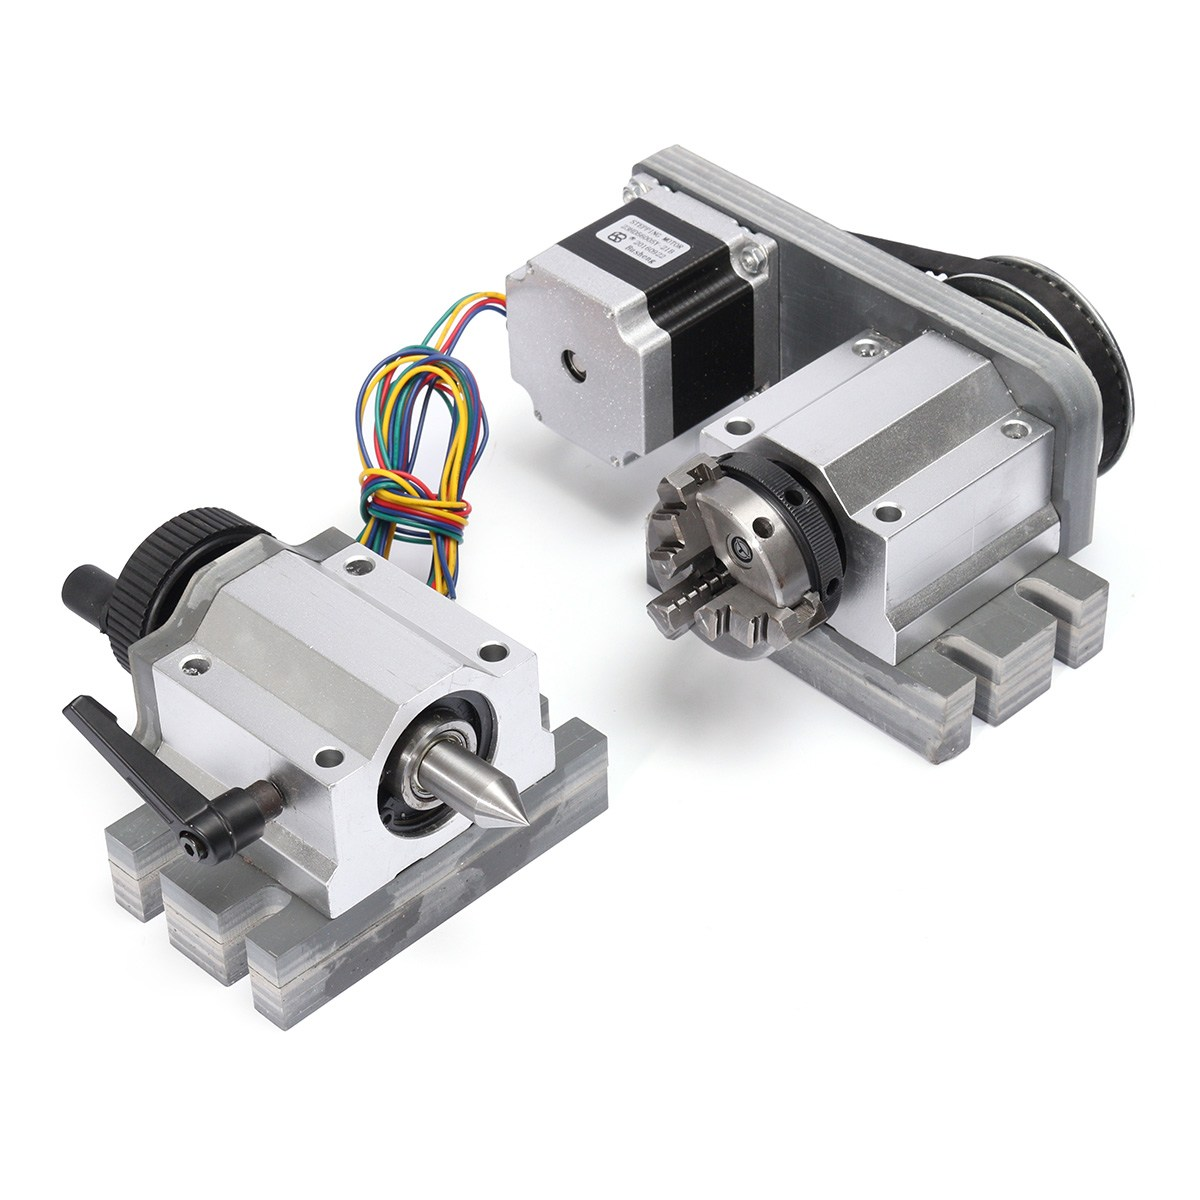 CNC Router Rotational Rotary Axis  A-axis 4th-axis 3-Jaw 80mm & Tail stock Stepper Motor for Engraving Machine